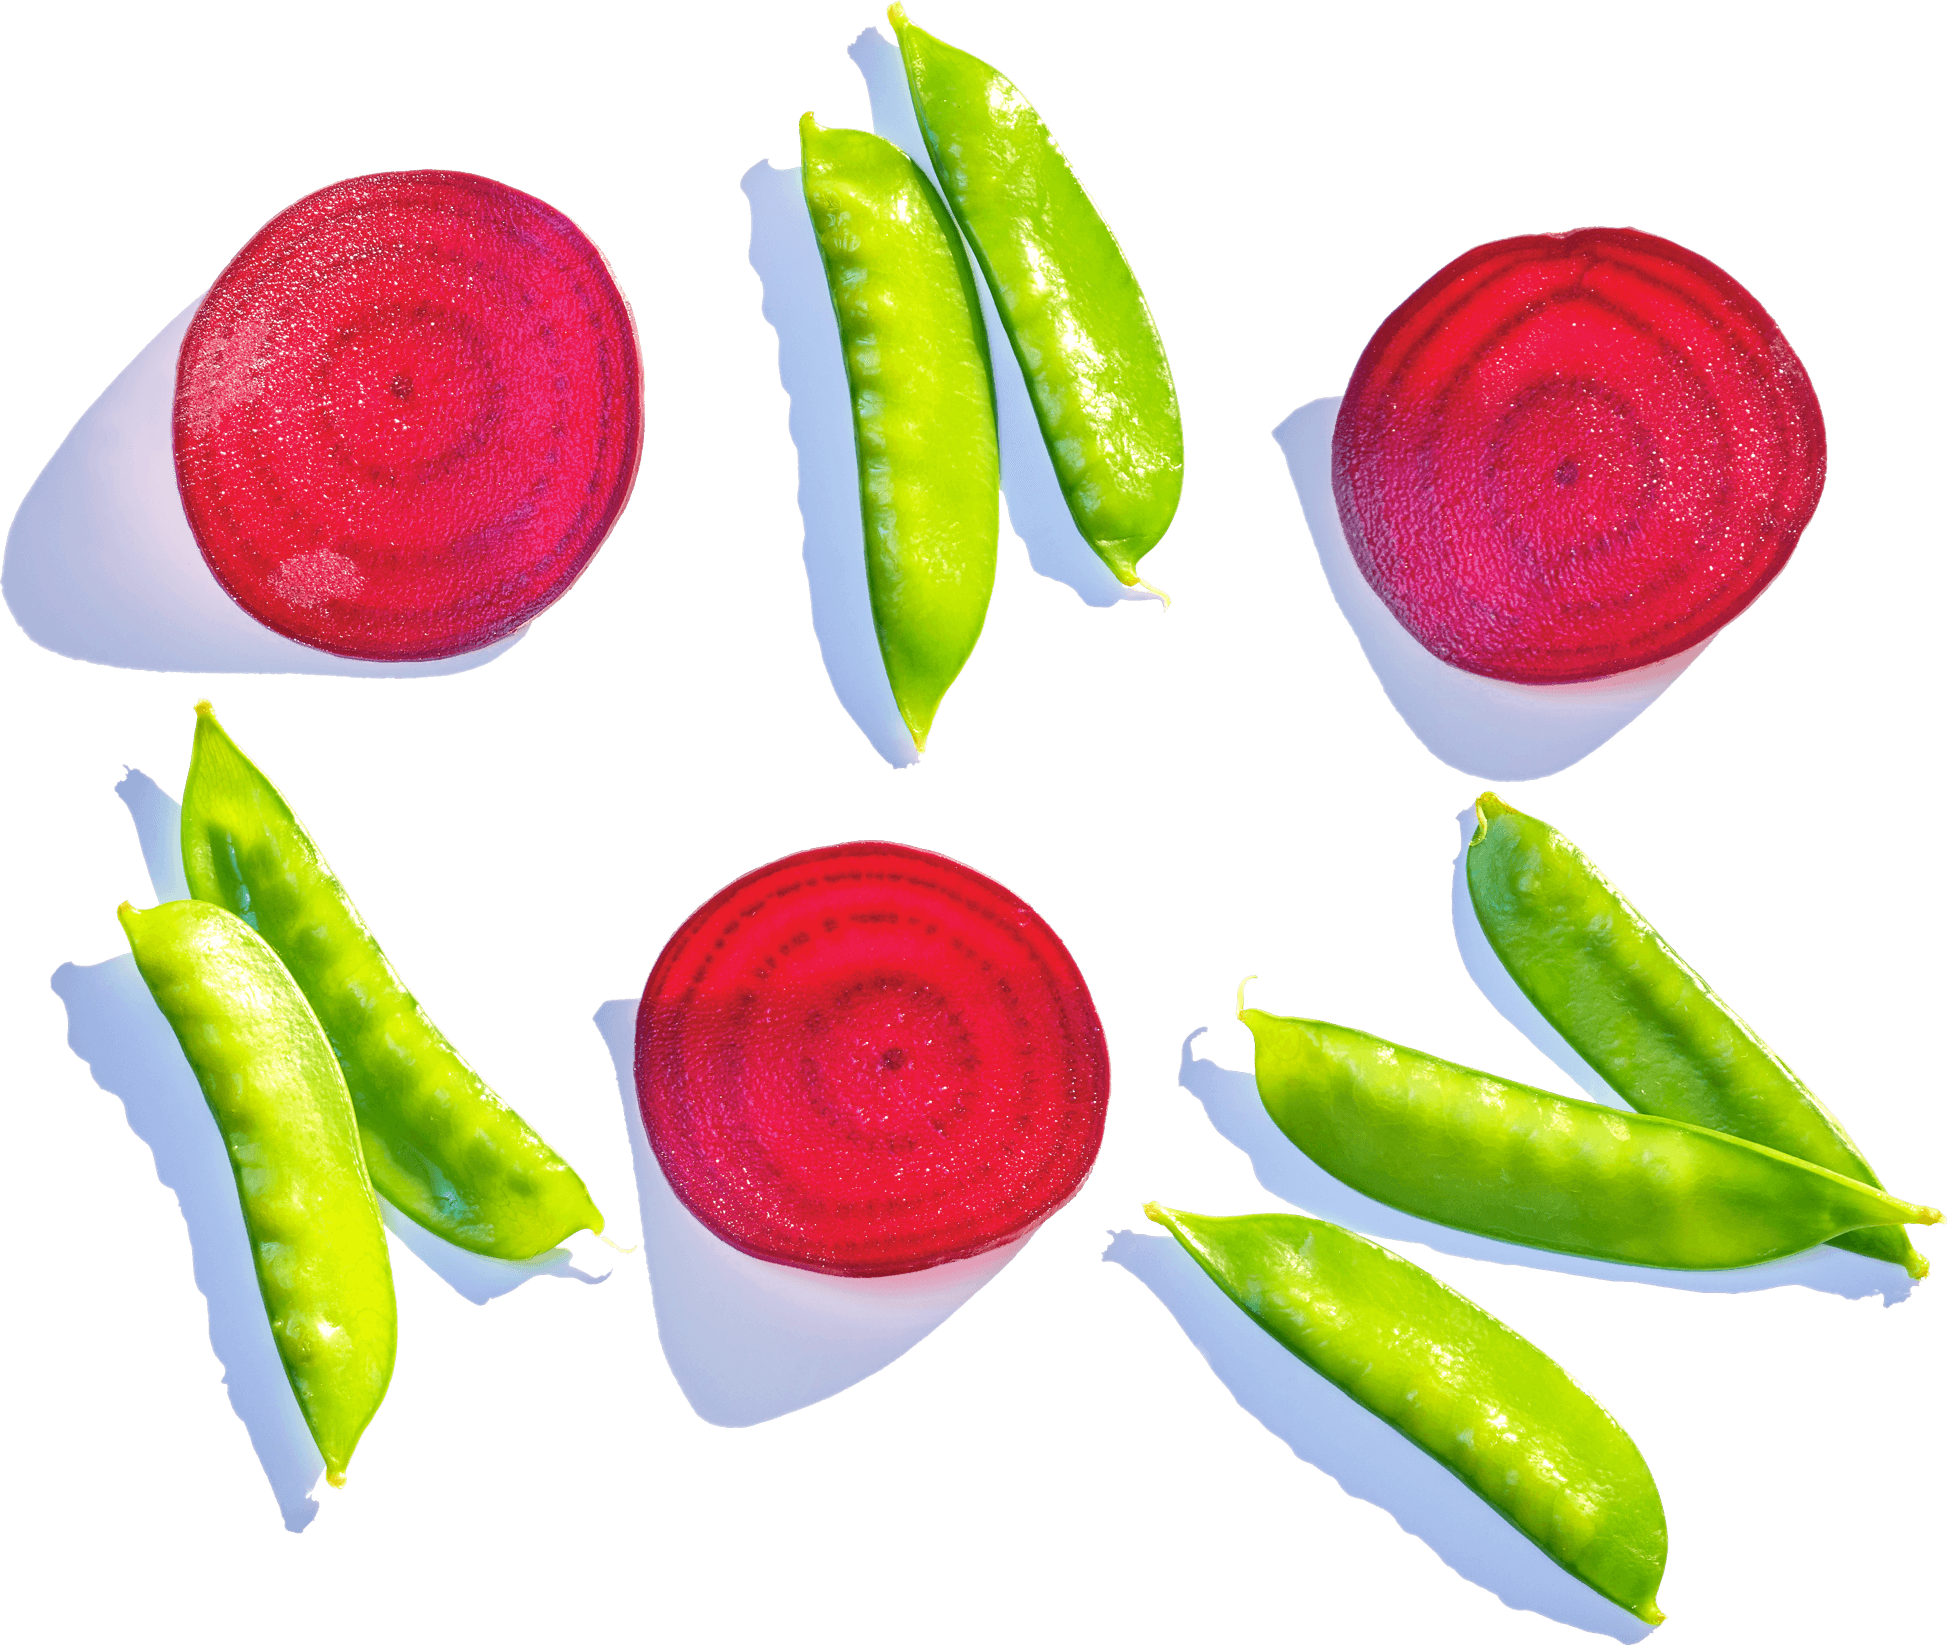 snap peas and beets